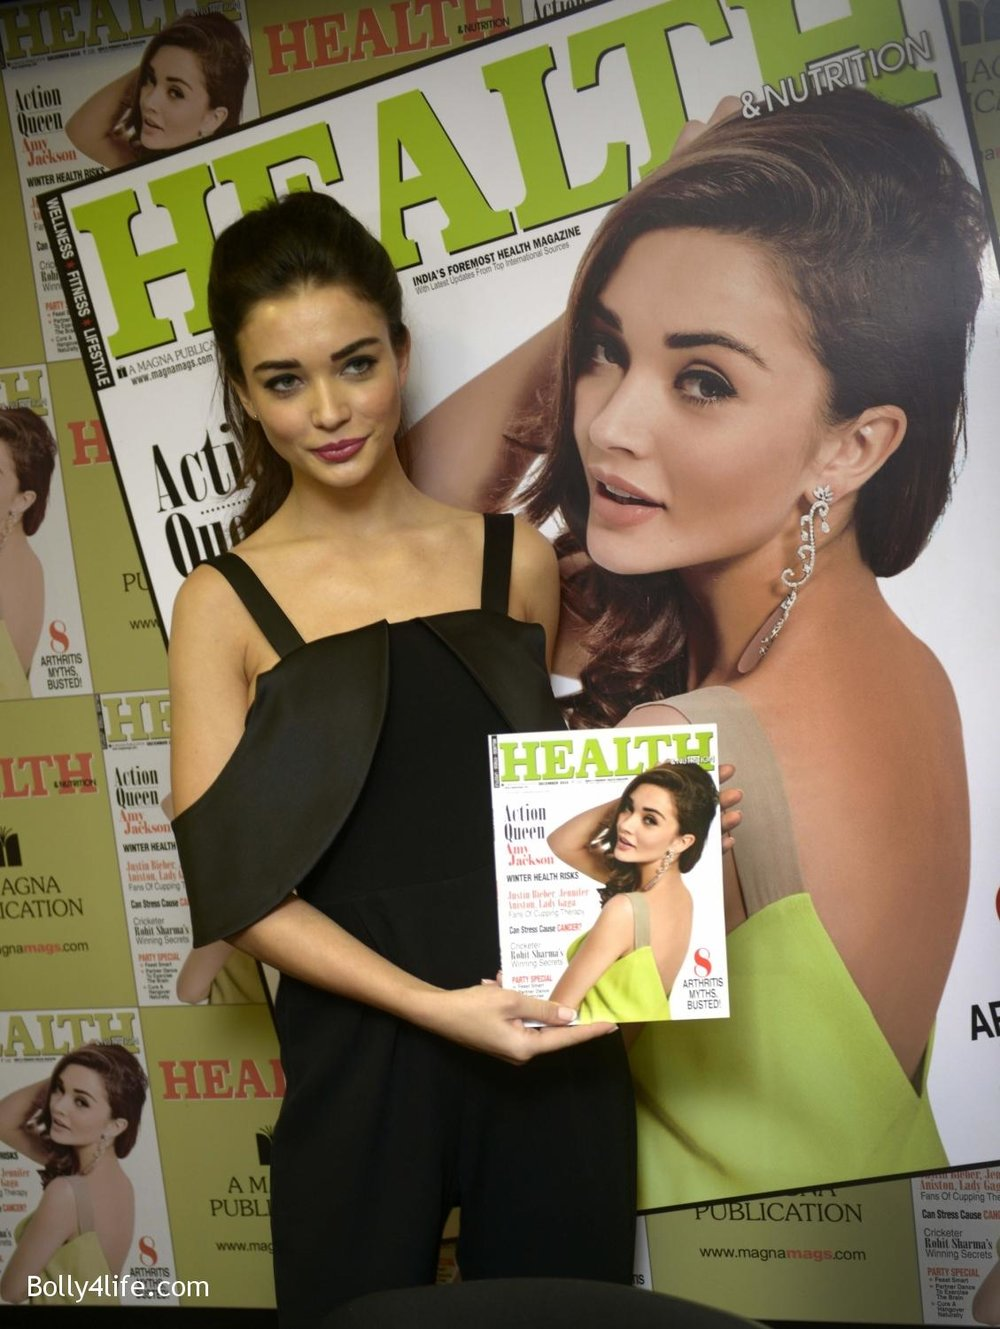 Amy-Jackson-during-the-Health-Nutrition-magazine-cover-unveiling-of-the-December-2016-issue-7.jpg